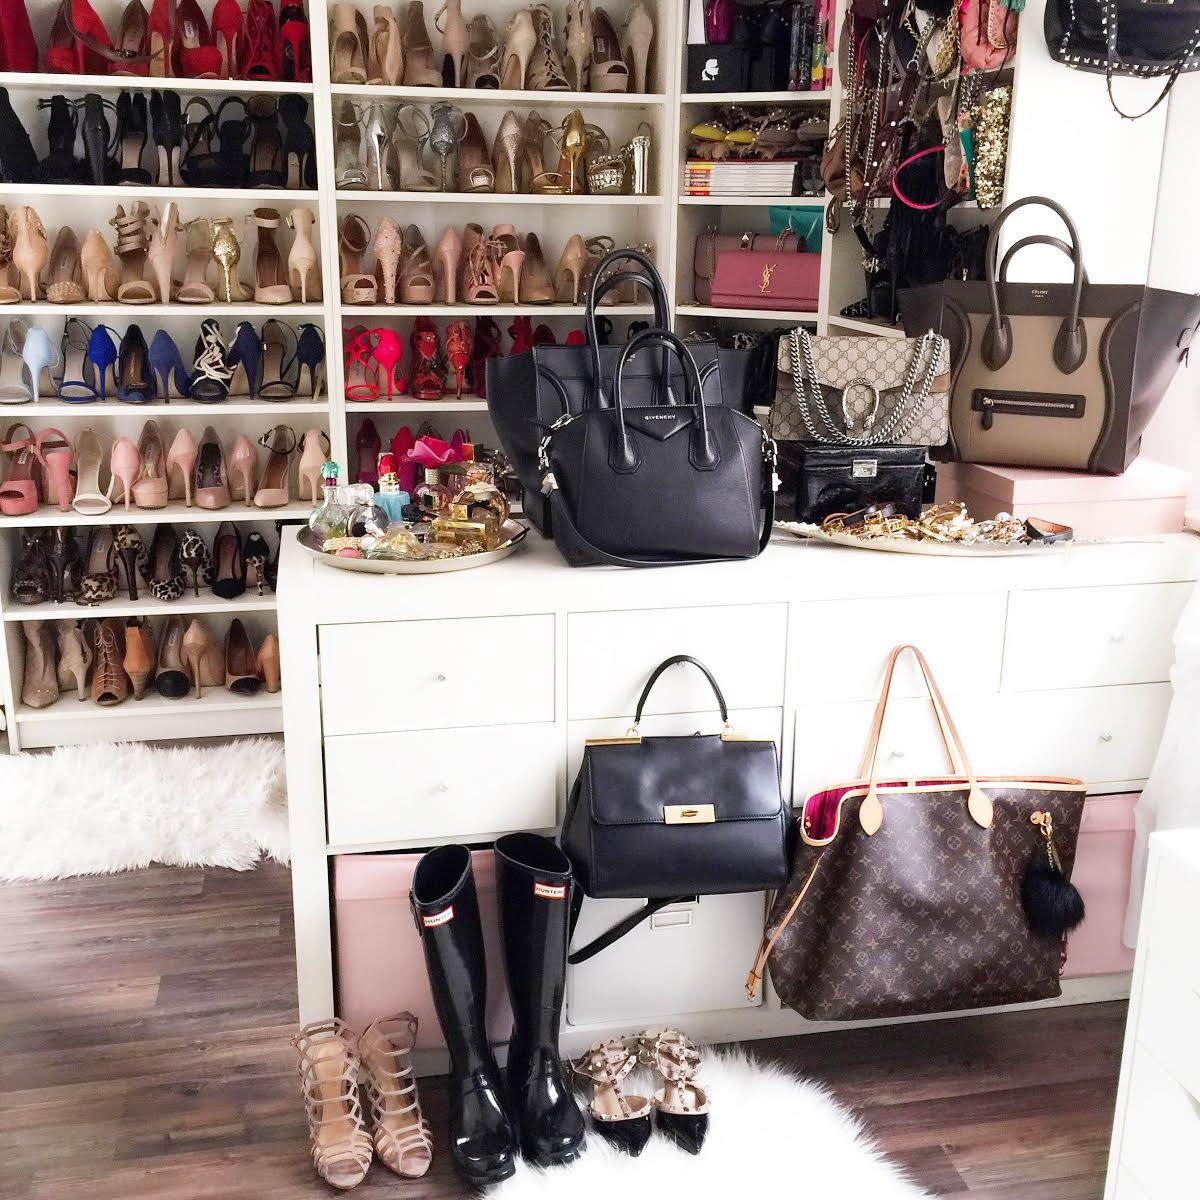 fashionhippieloves-closet-louis-vuitton-bag